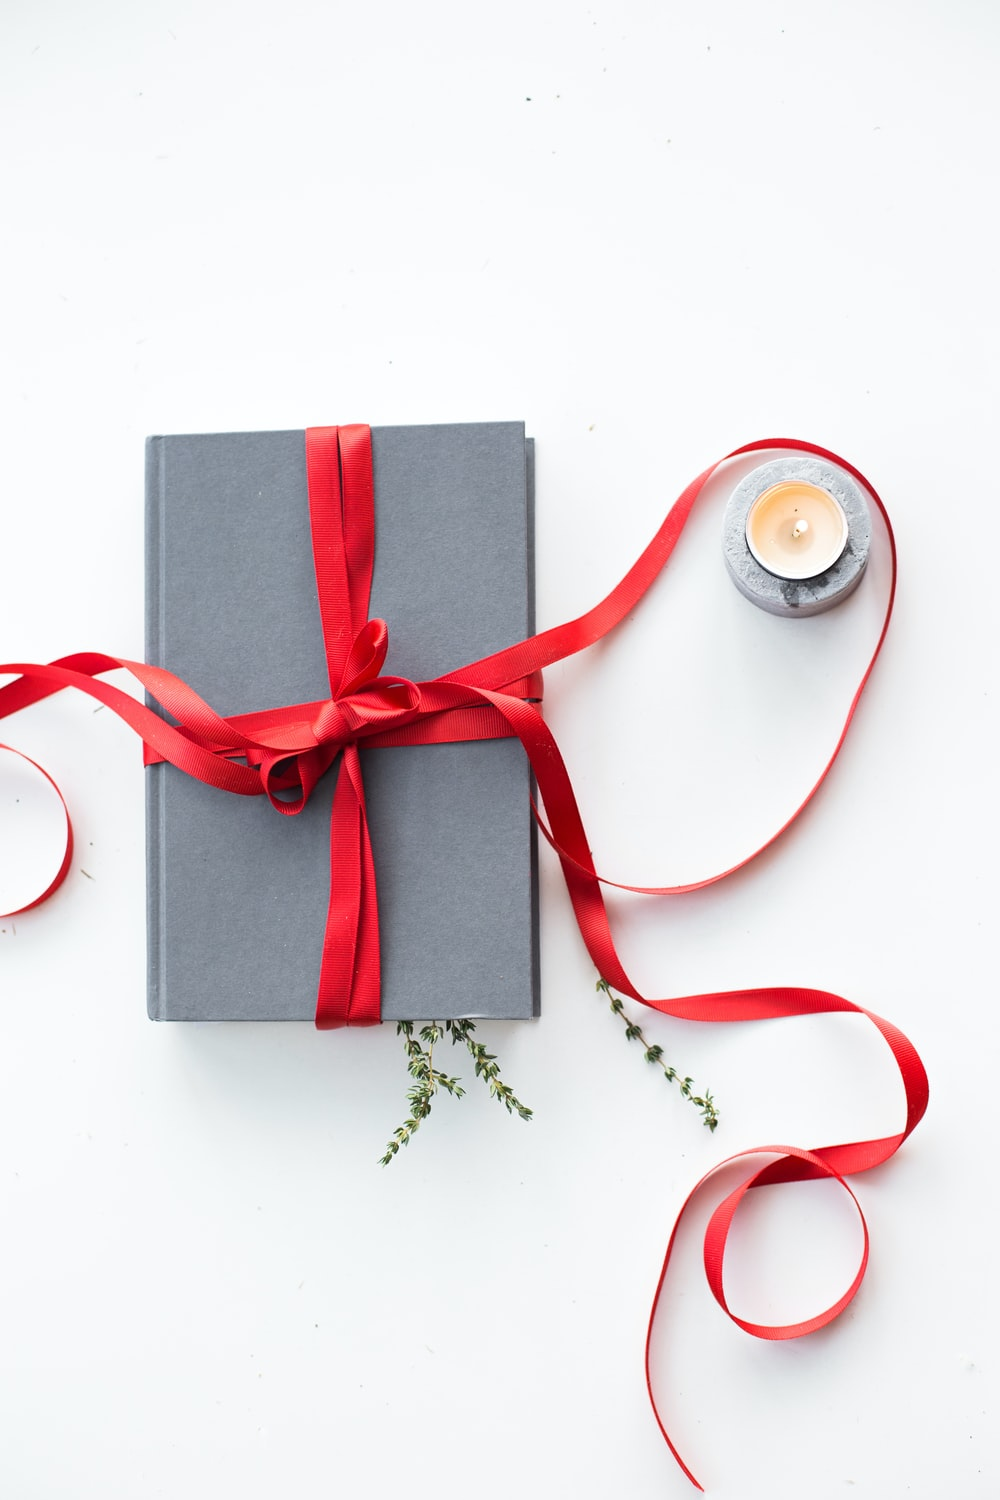 gray book wrapped with red ribbon beside teallight candle